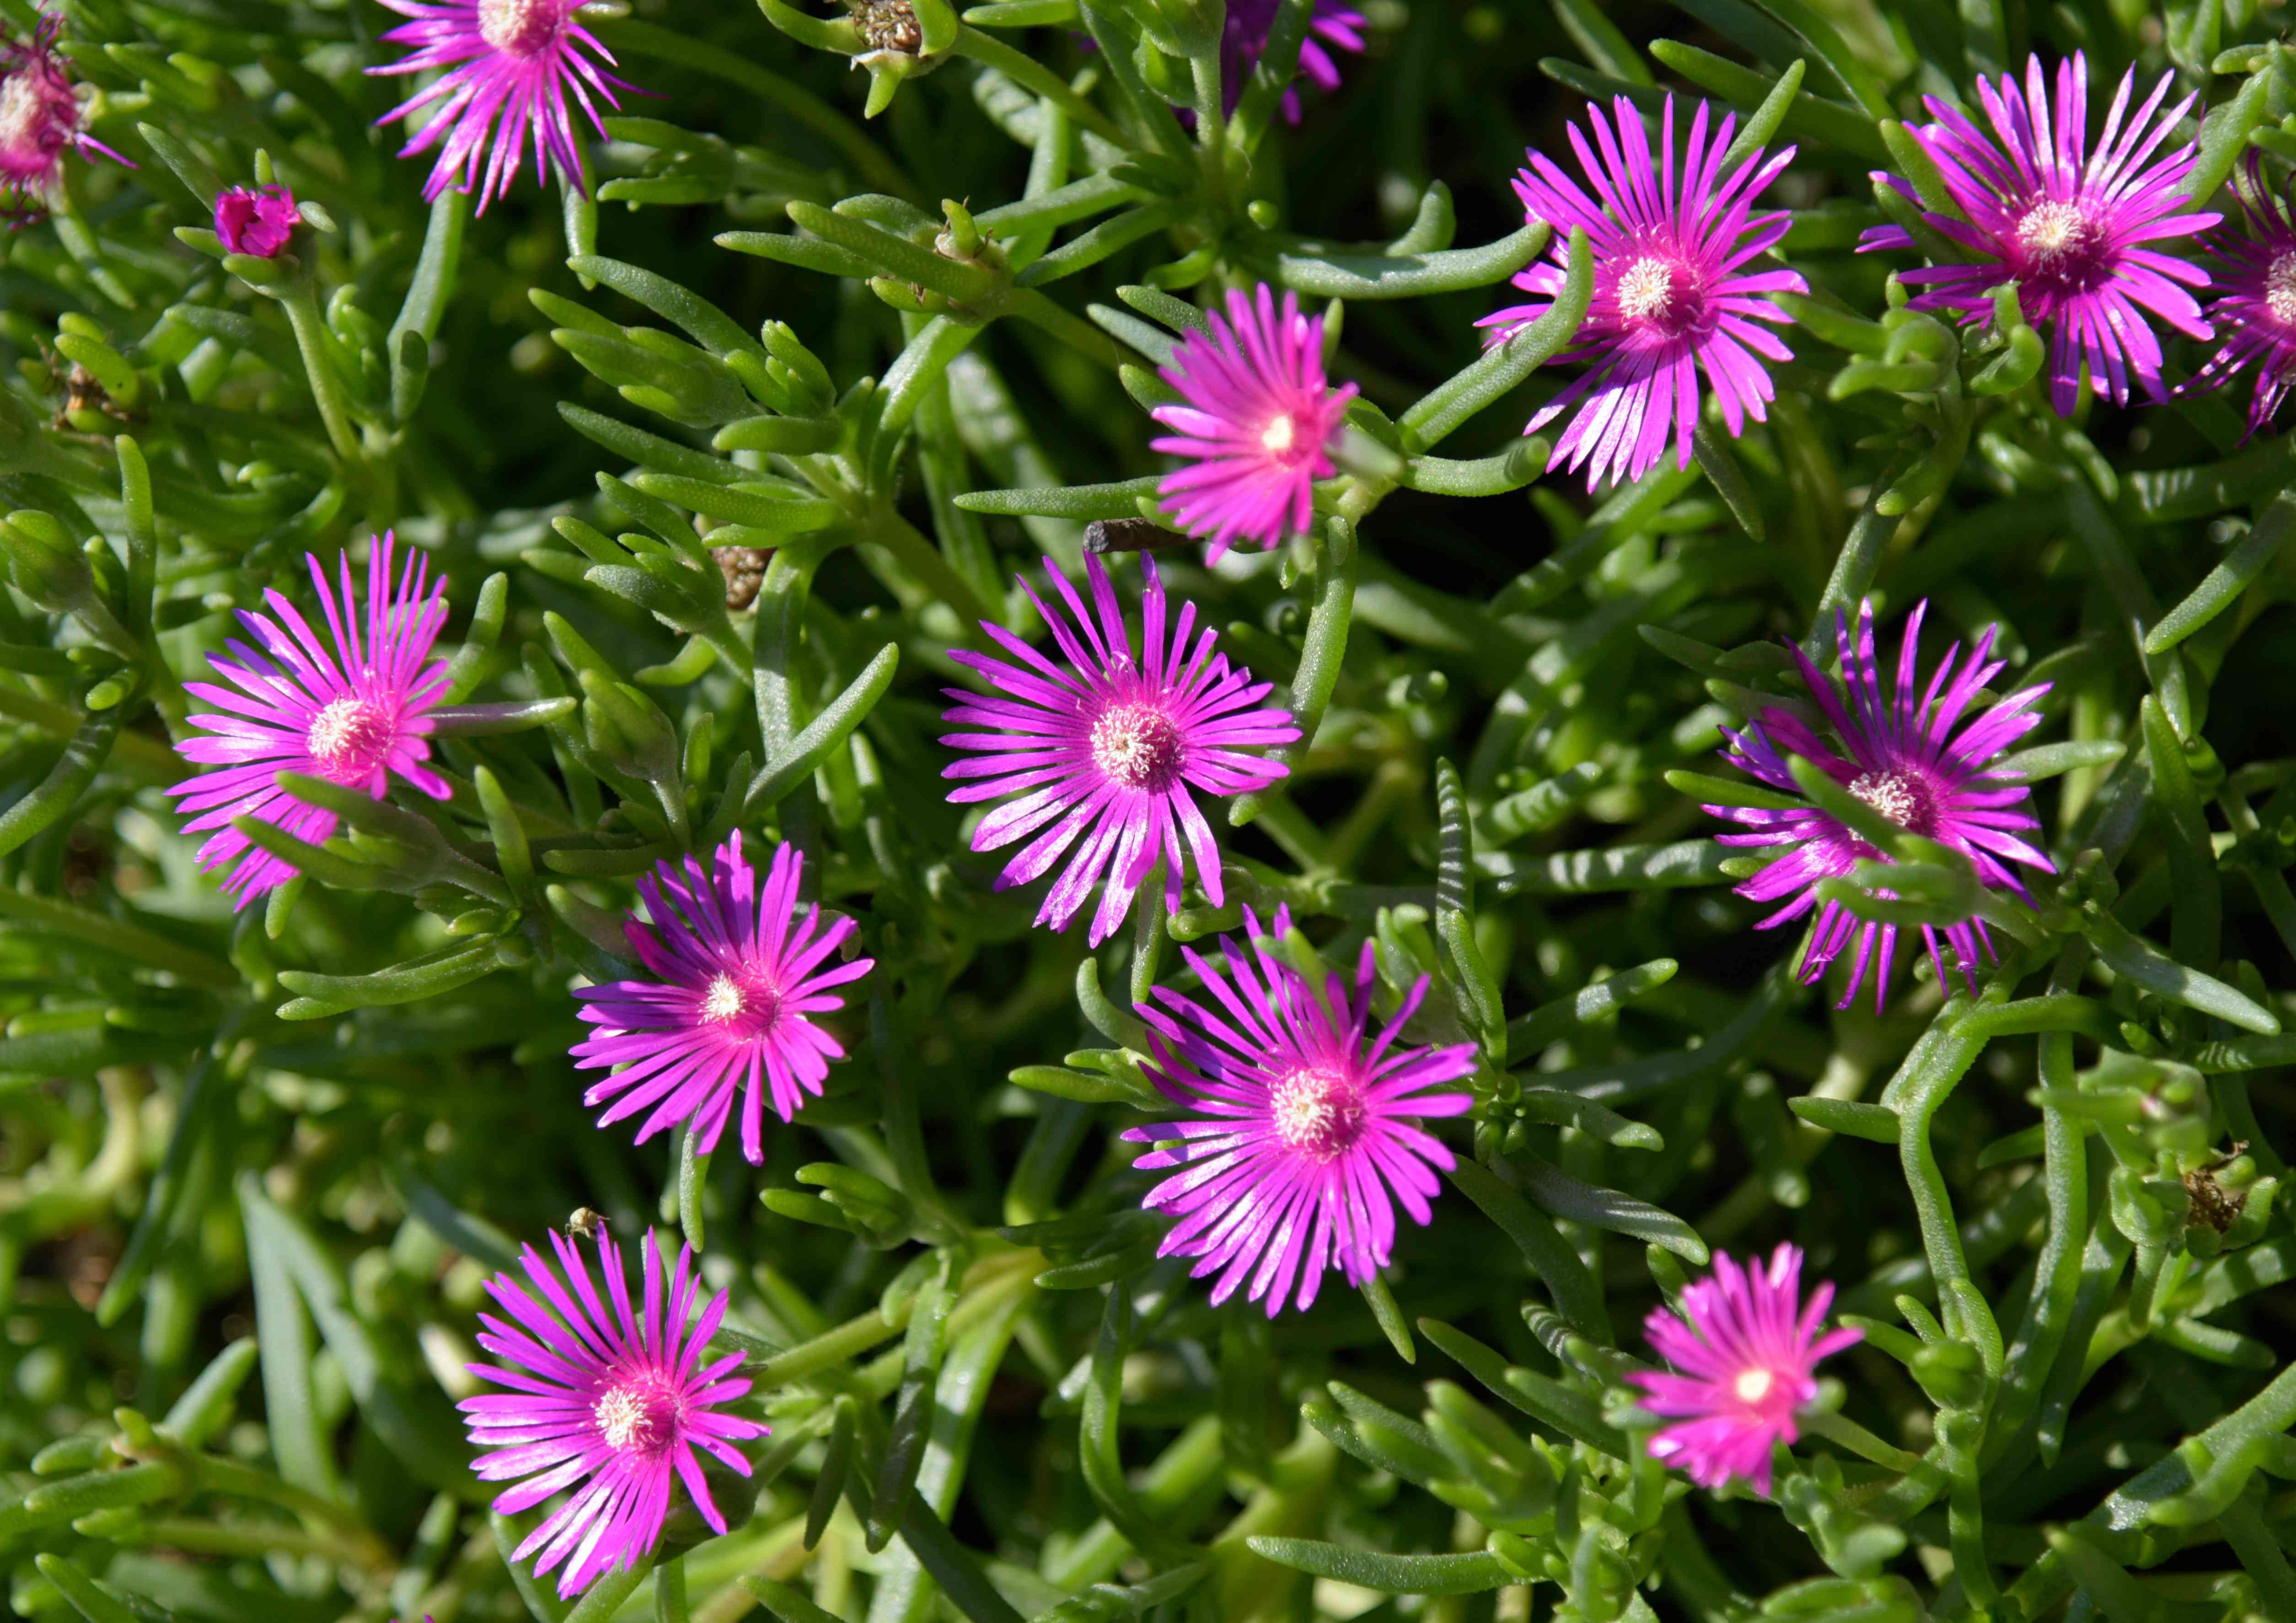 Cooper's hardy ice plant with radiating magenta petals surrounded by succulent-like stems